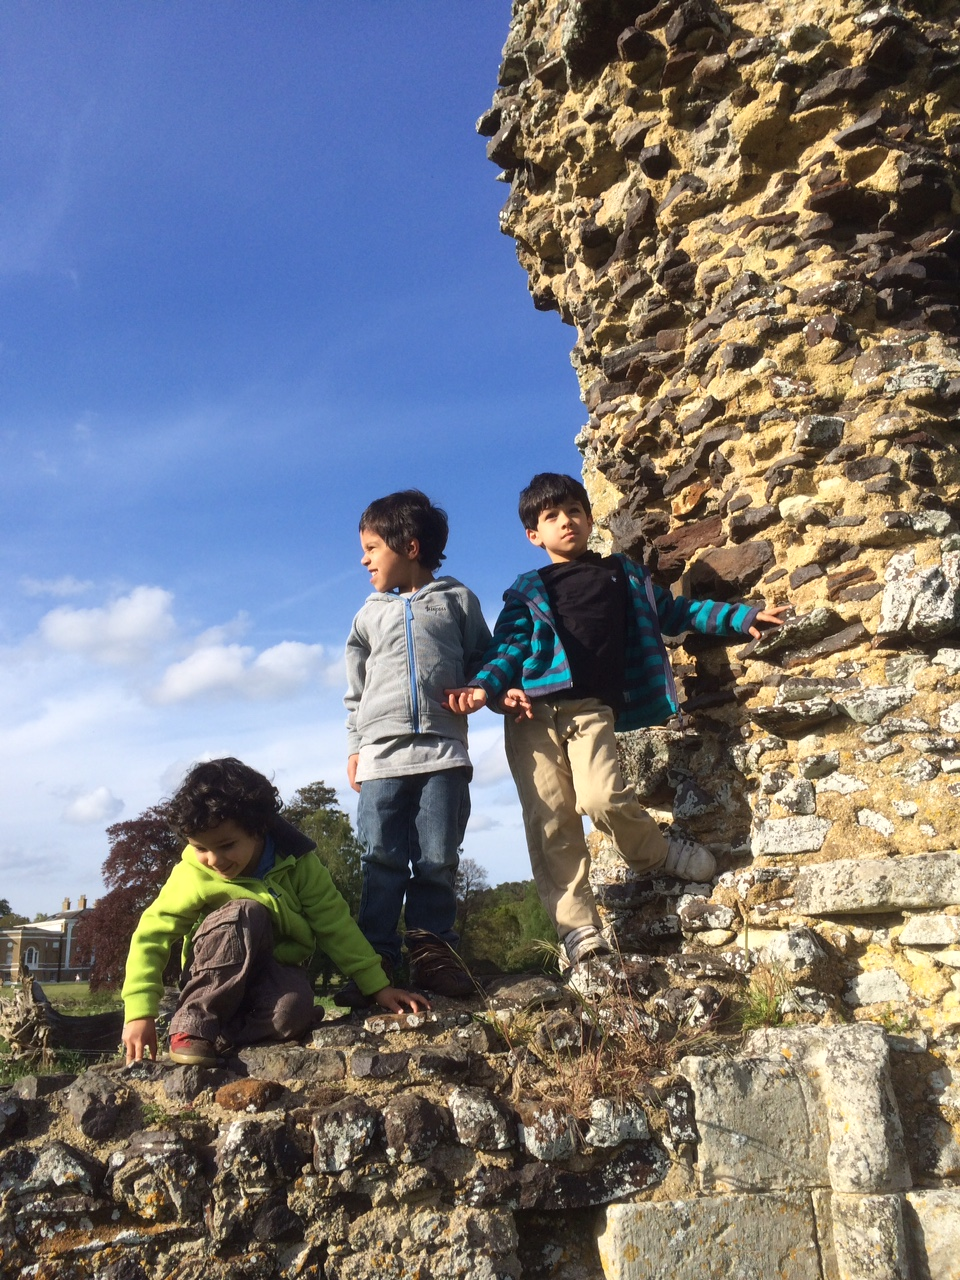 waverley abbey ruins and trespass boys fleeces